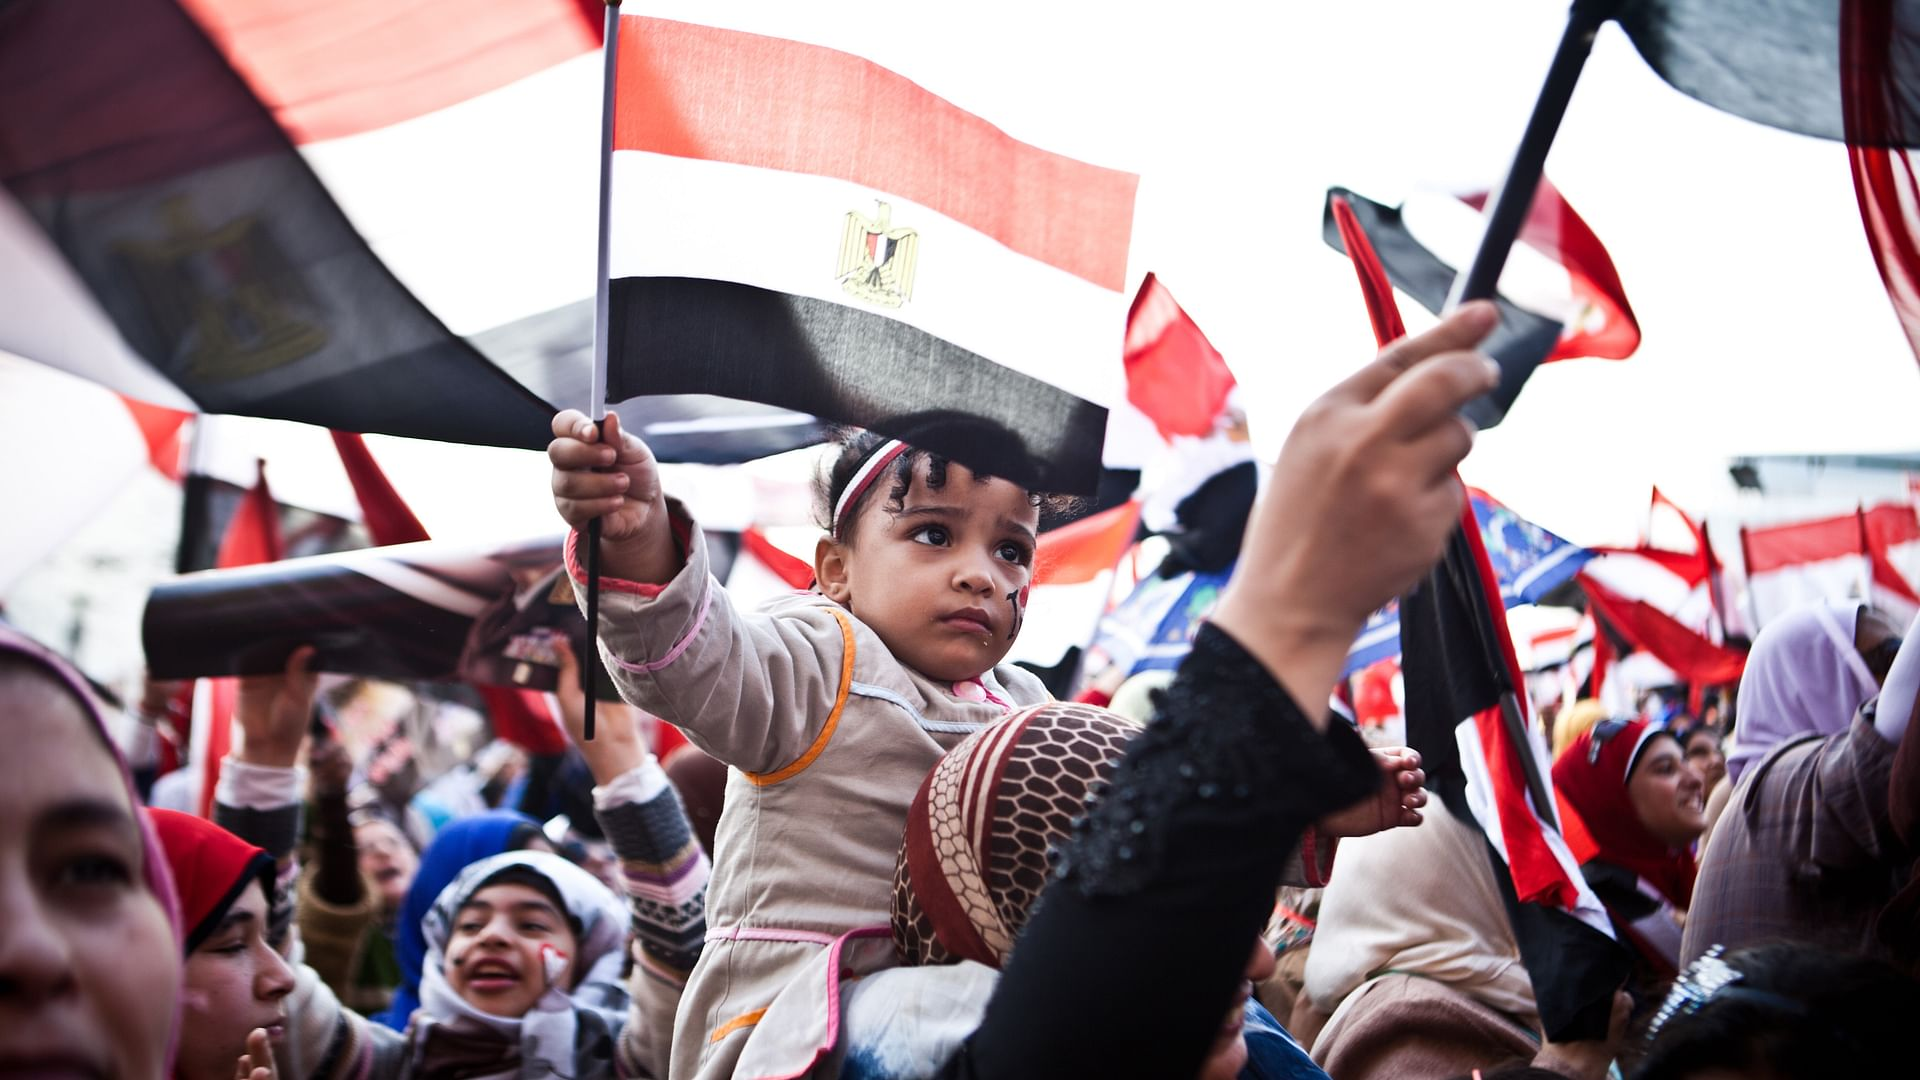 10 Years of the Arab Spring